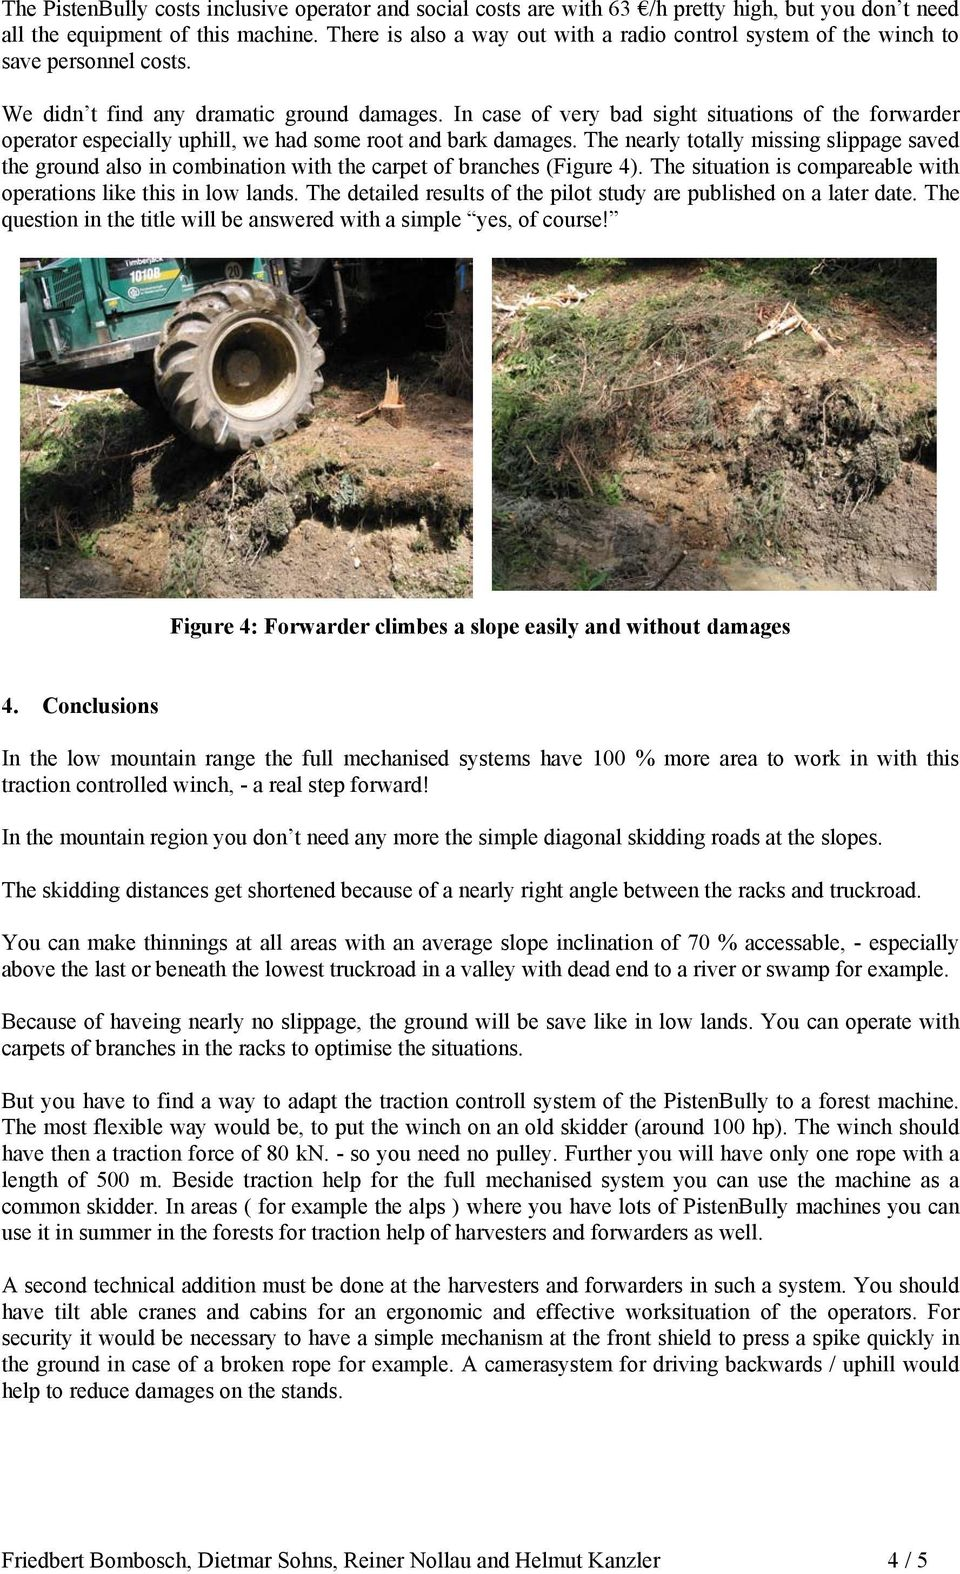 In case of very bad sight situations of the forwarder operator especially uphill, we had some root and bark damages.